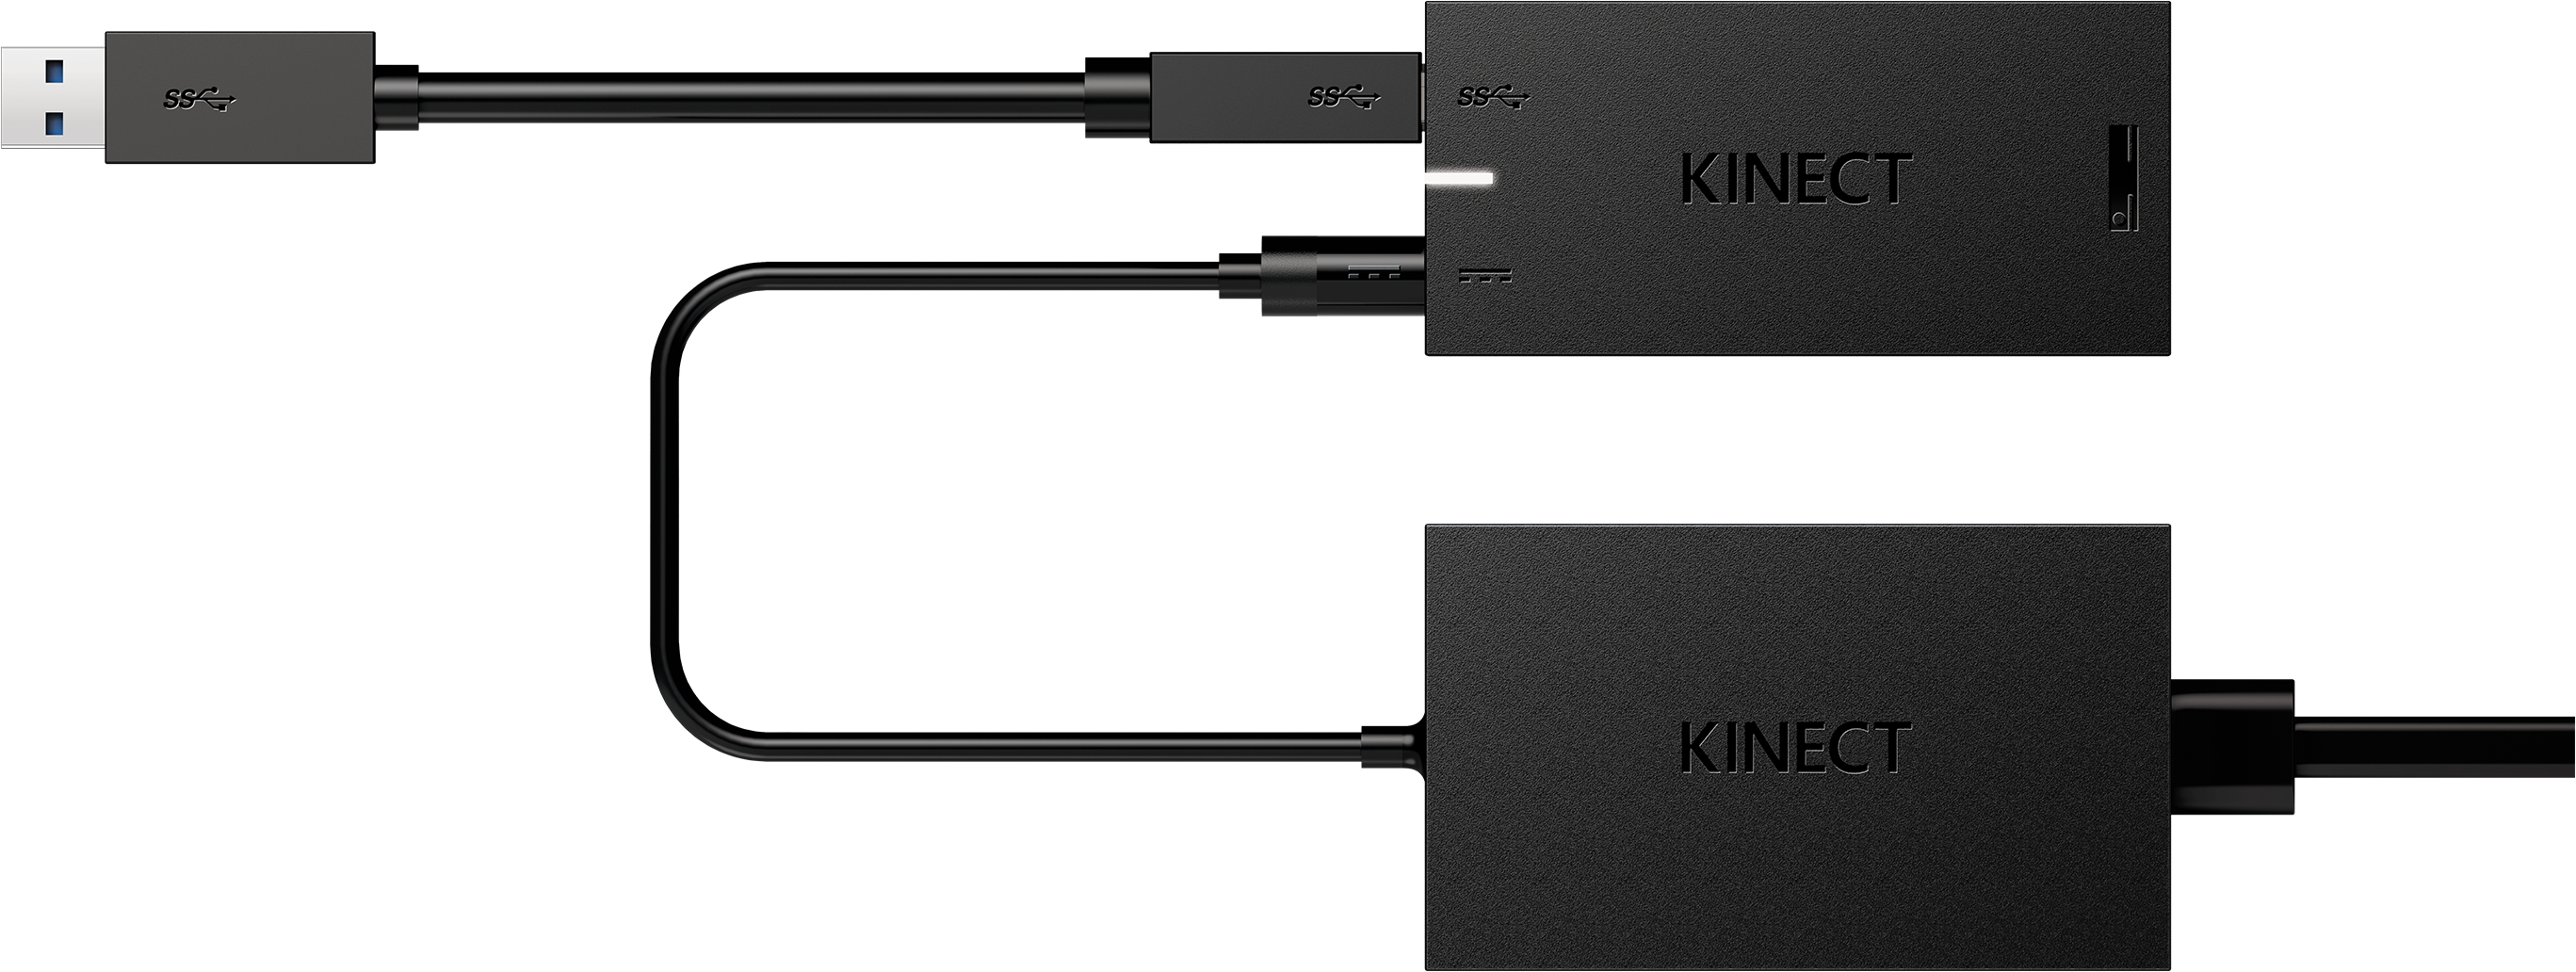 Kinect Adapter for Xbox One S and Windows PC